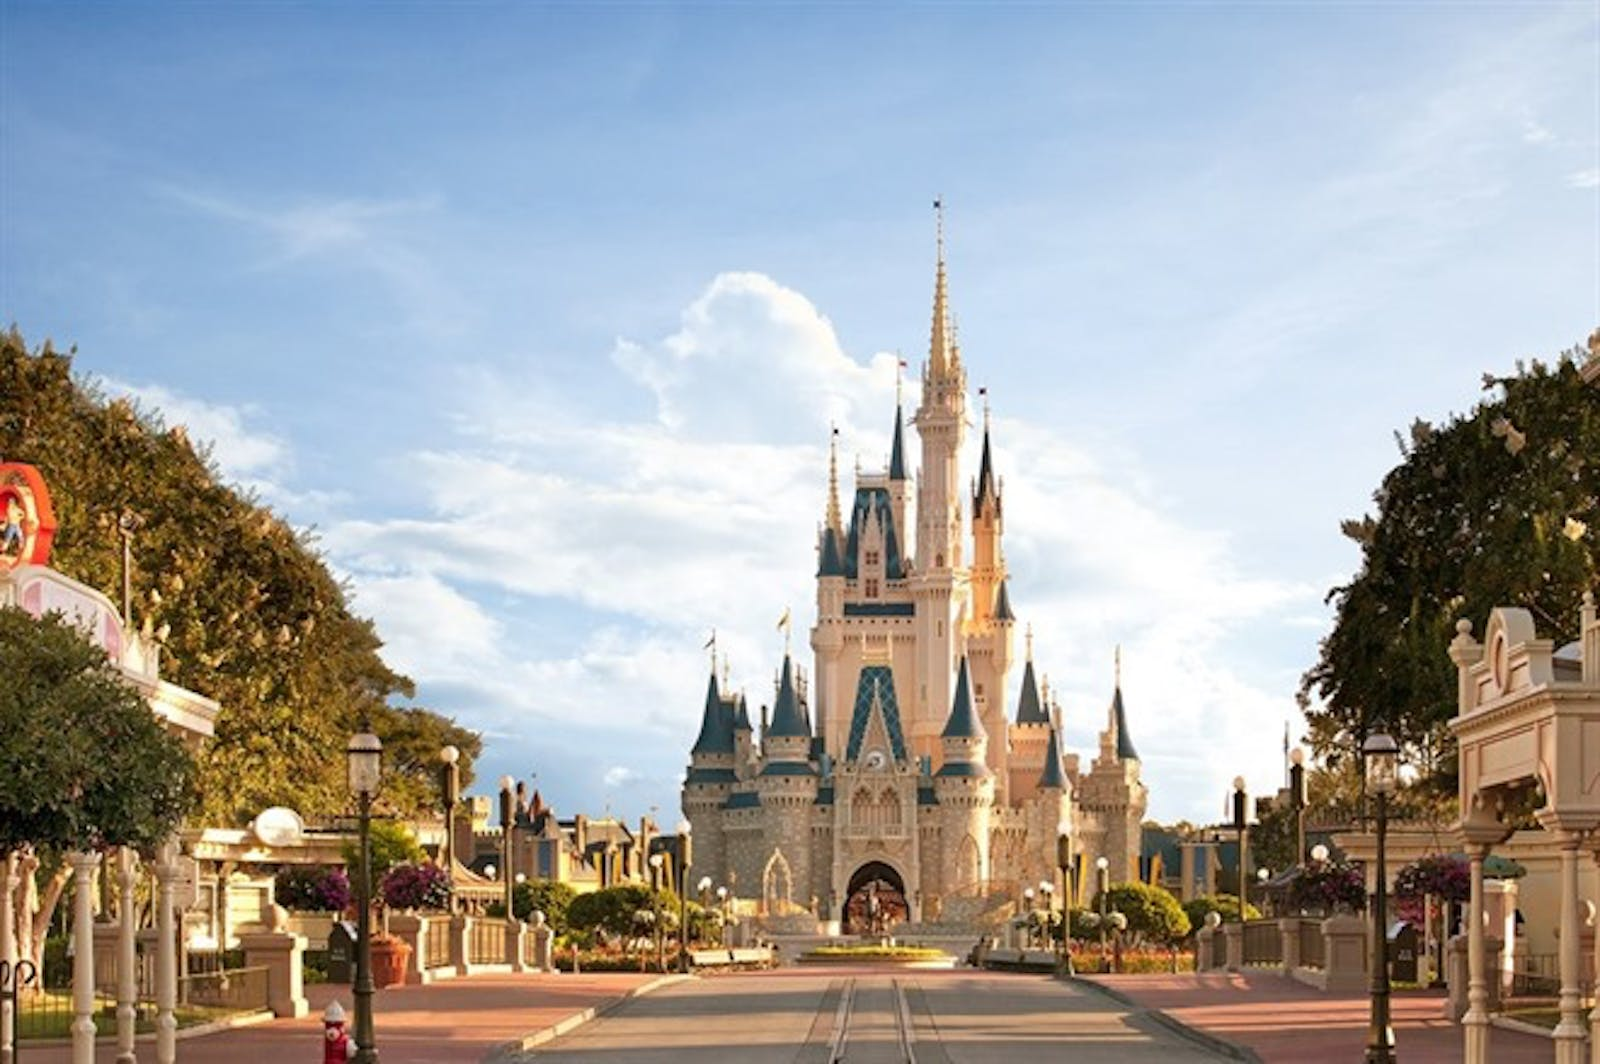 Cinderella Castle & Main Street - Disney Magic Kingdom